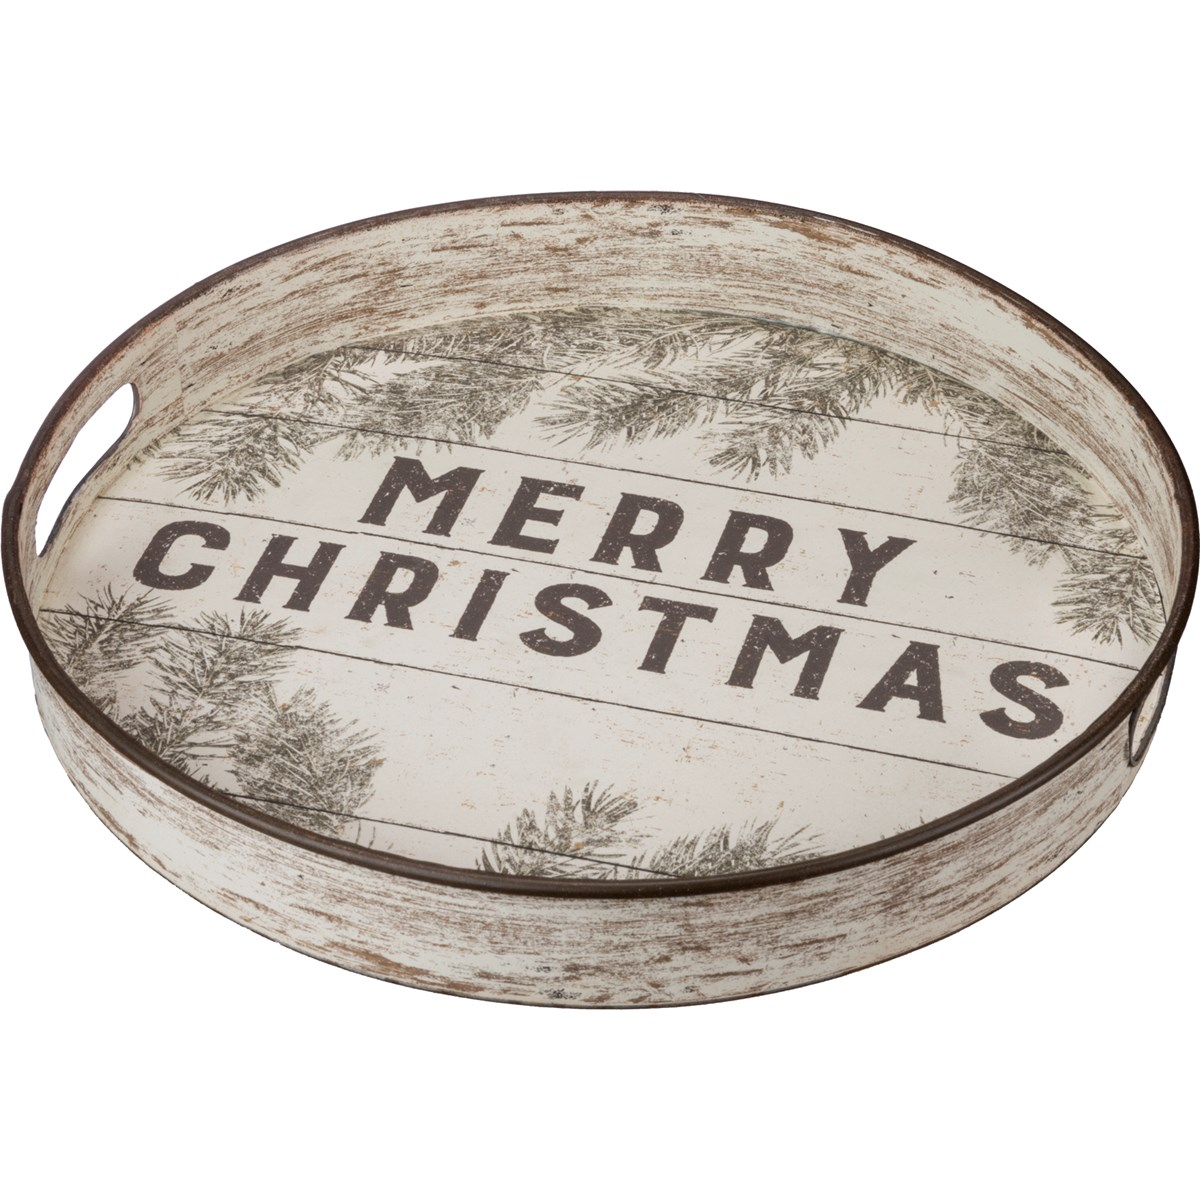 "Tray - Merry Christmas - 12.50"" Diameter x 2"" - Metal, Paper"